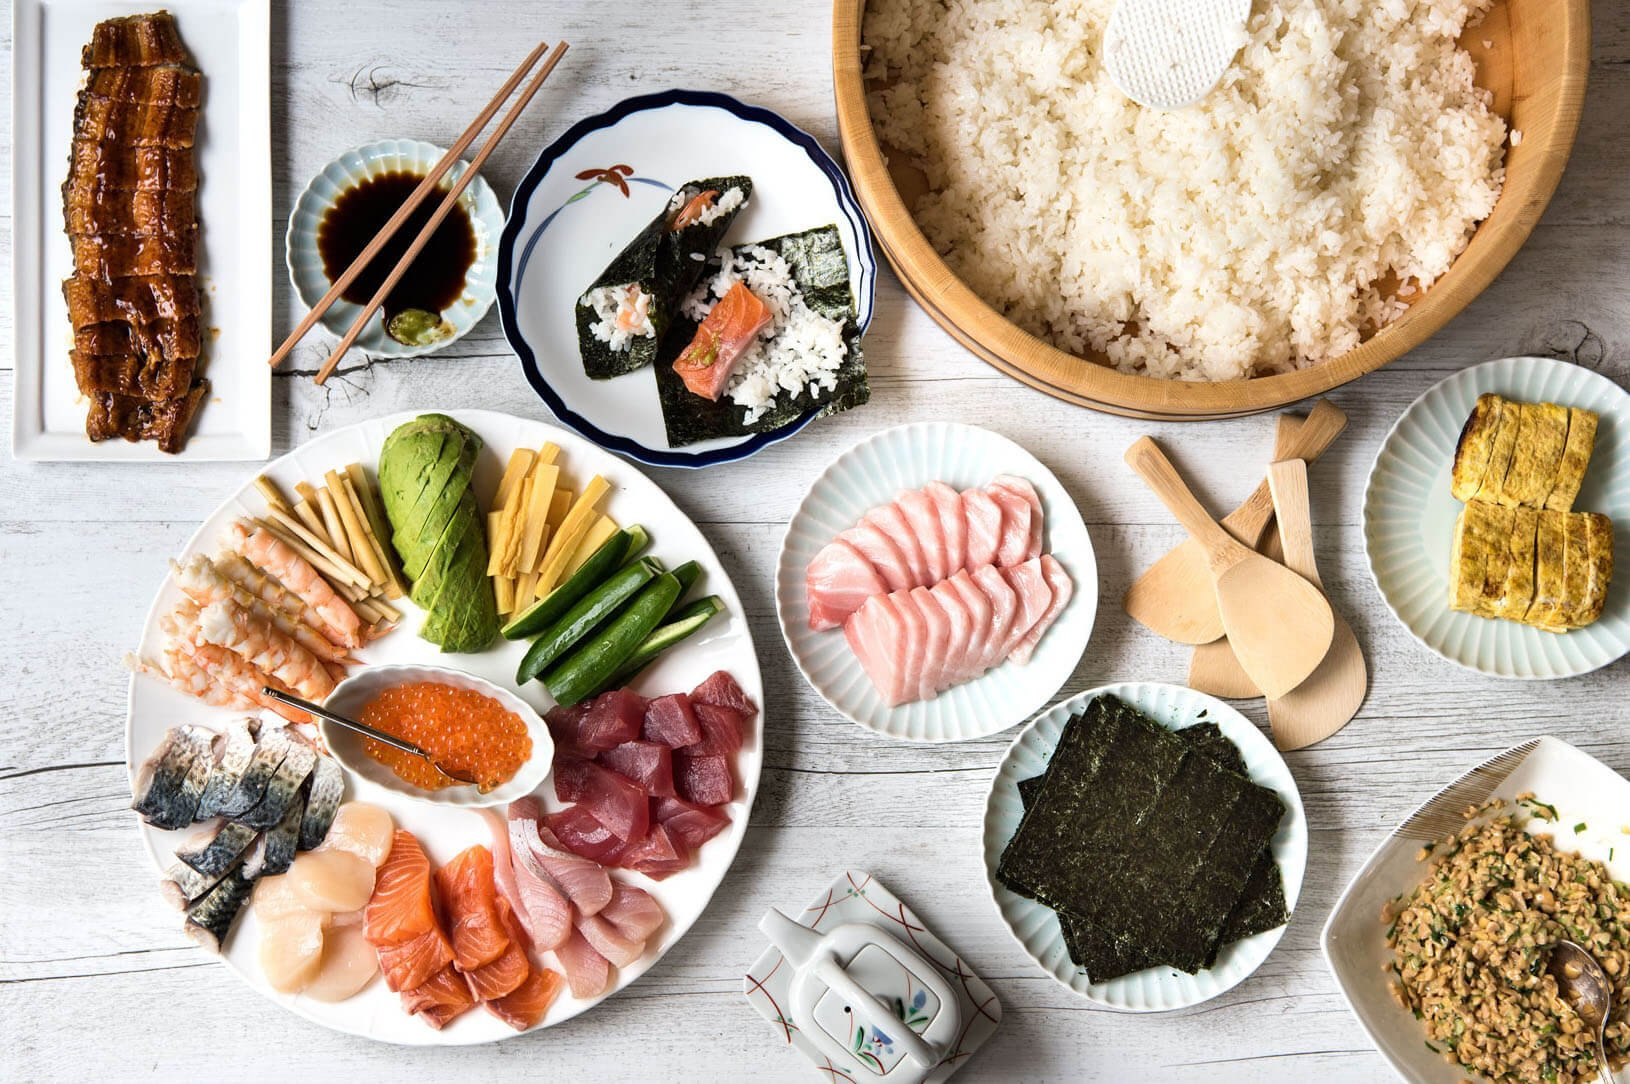 Home-made temakizushi (手巻き寿司) looks fancy but is very easy to prepare Cut the sushi fillings, display everything on the table and let the crowd serve themselves. It is fun and great for a little party with family and friends.